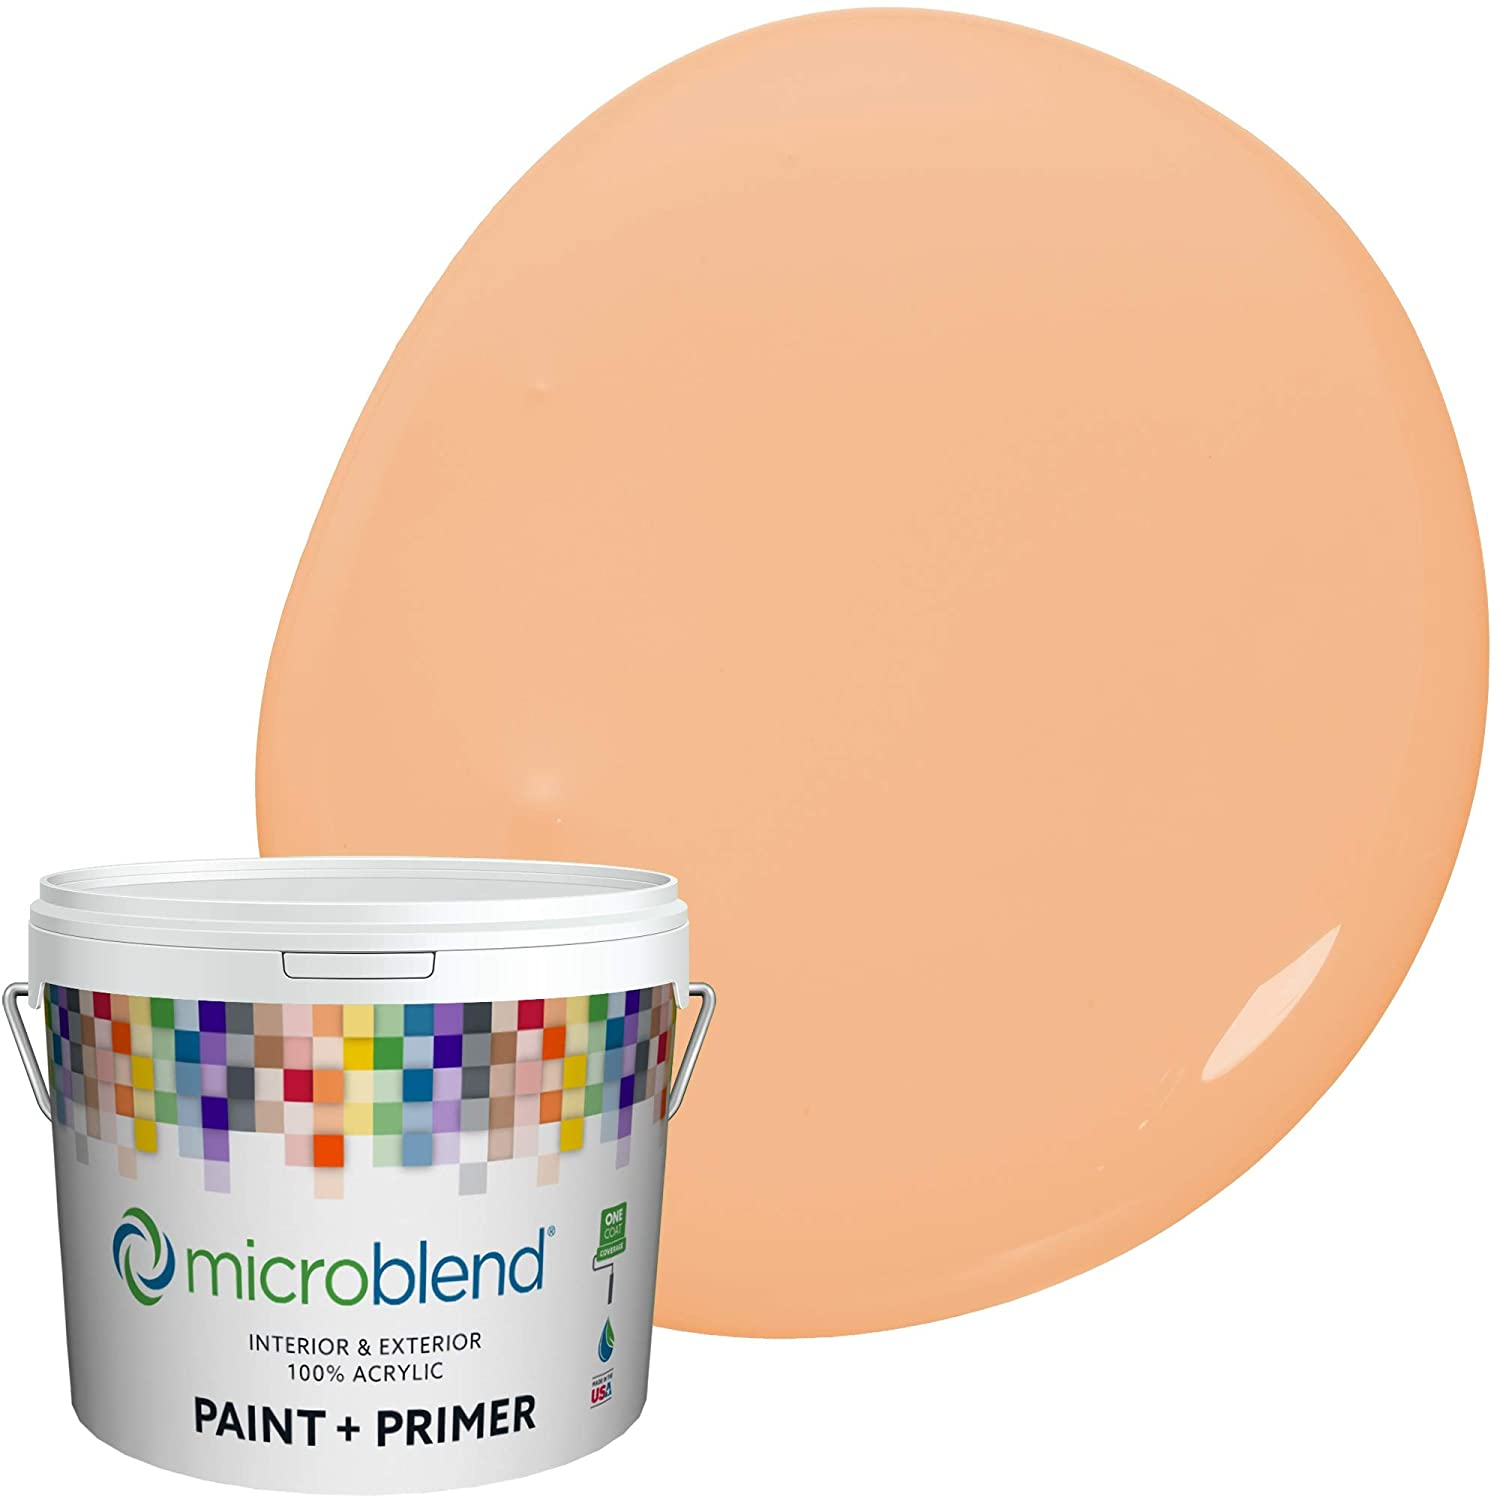 Microblend Exterior Paint and Primer - Orange/Mojave Sand, Flat Sheen, 1-Gallon, Premium Quality, One Coat Hide, Low VOC, Washable, Microblend Oranges Family